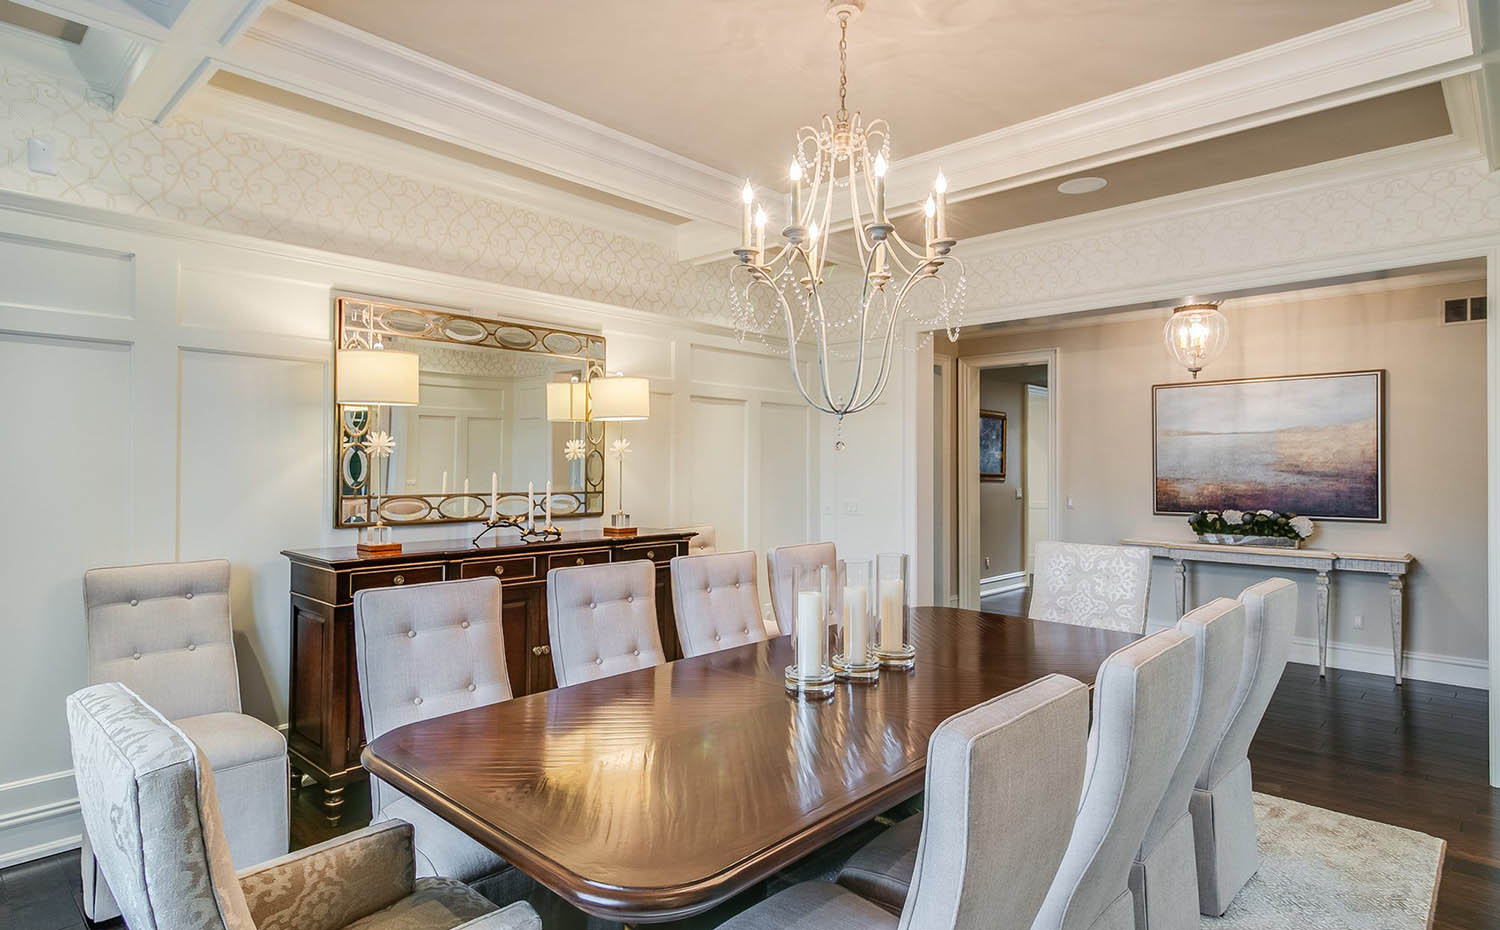 Tan dining room design with white wall paneling and white coffered ceiling beams with tan coffers. Chandelier.